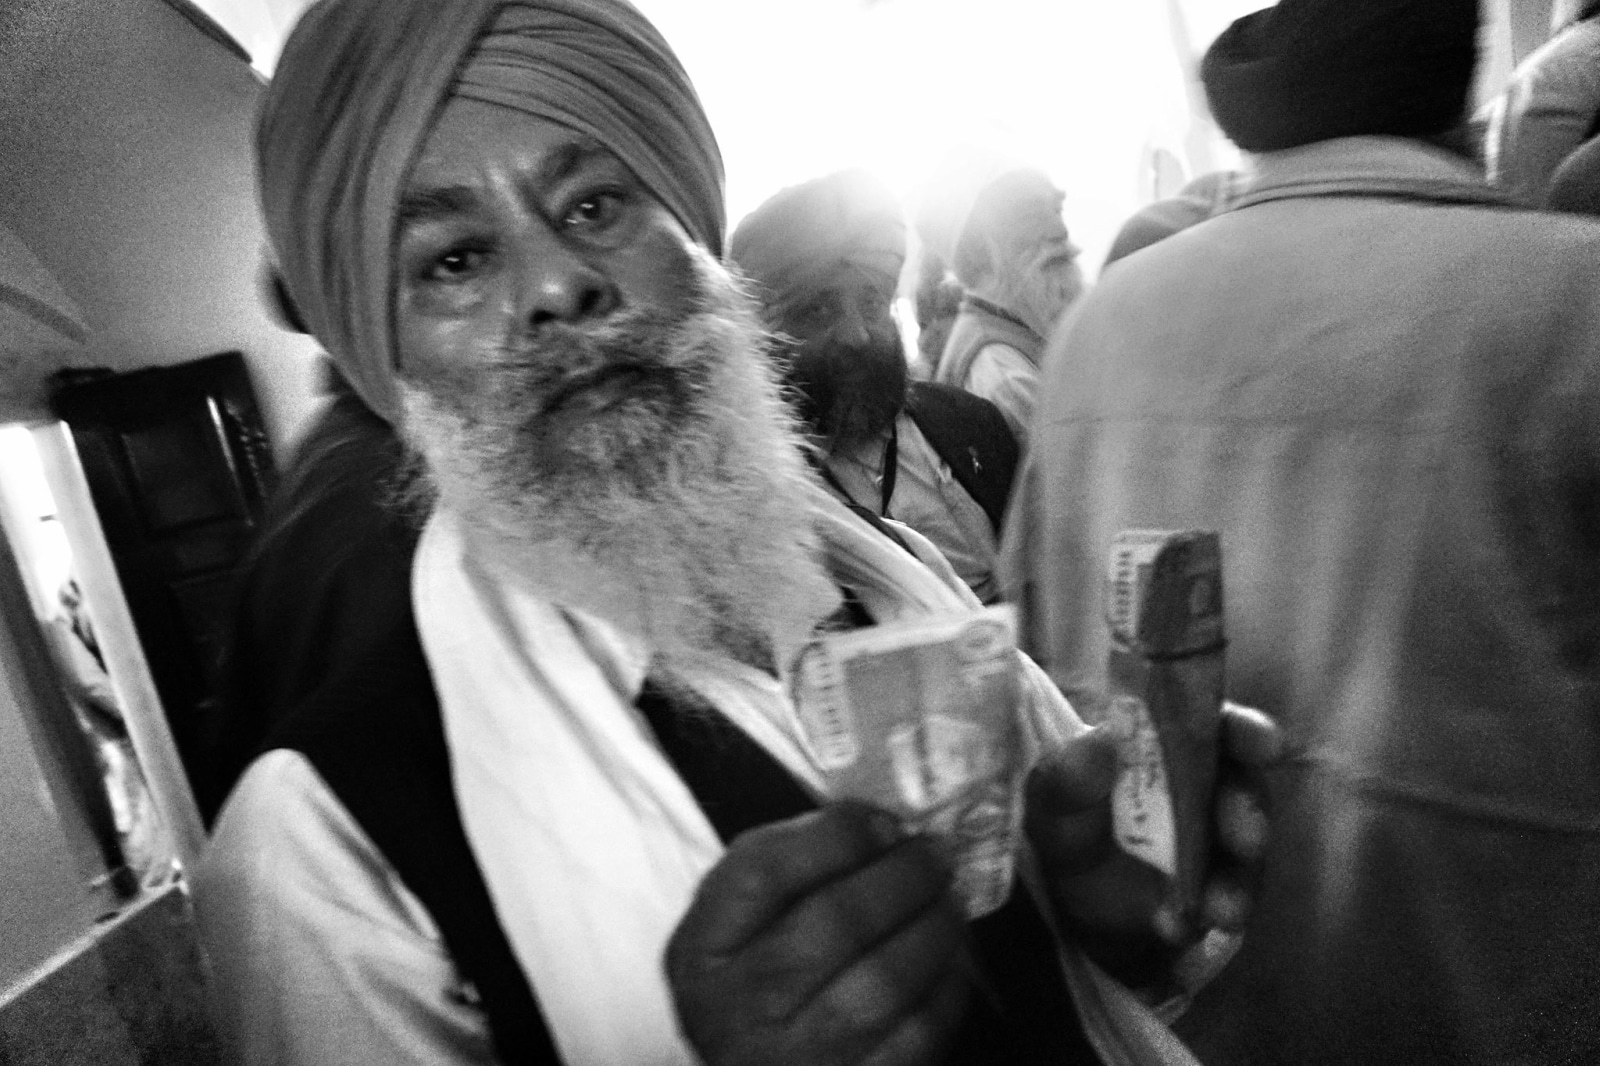 Baldev Singh Rai from Himachal Pradesh changed Indian rupee to Pakistani rupee for using it for donation at the 'Darbar Sahib' in Kartarpur, Pakistan.